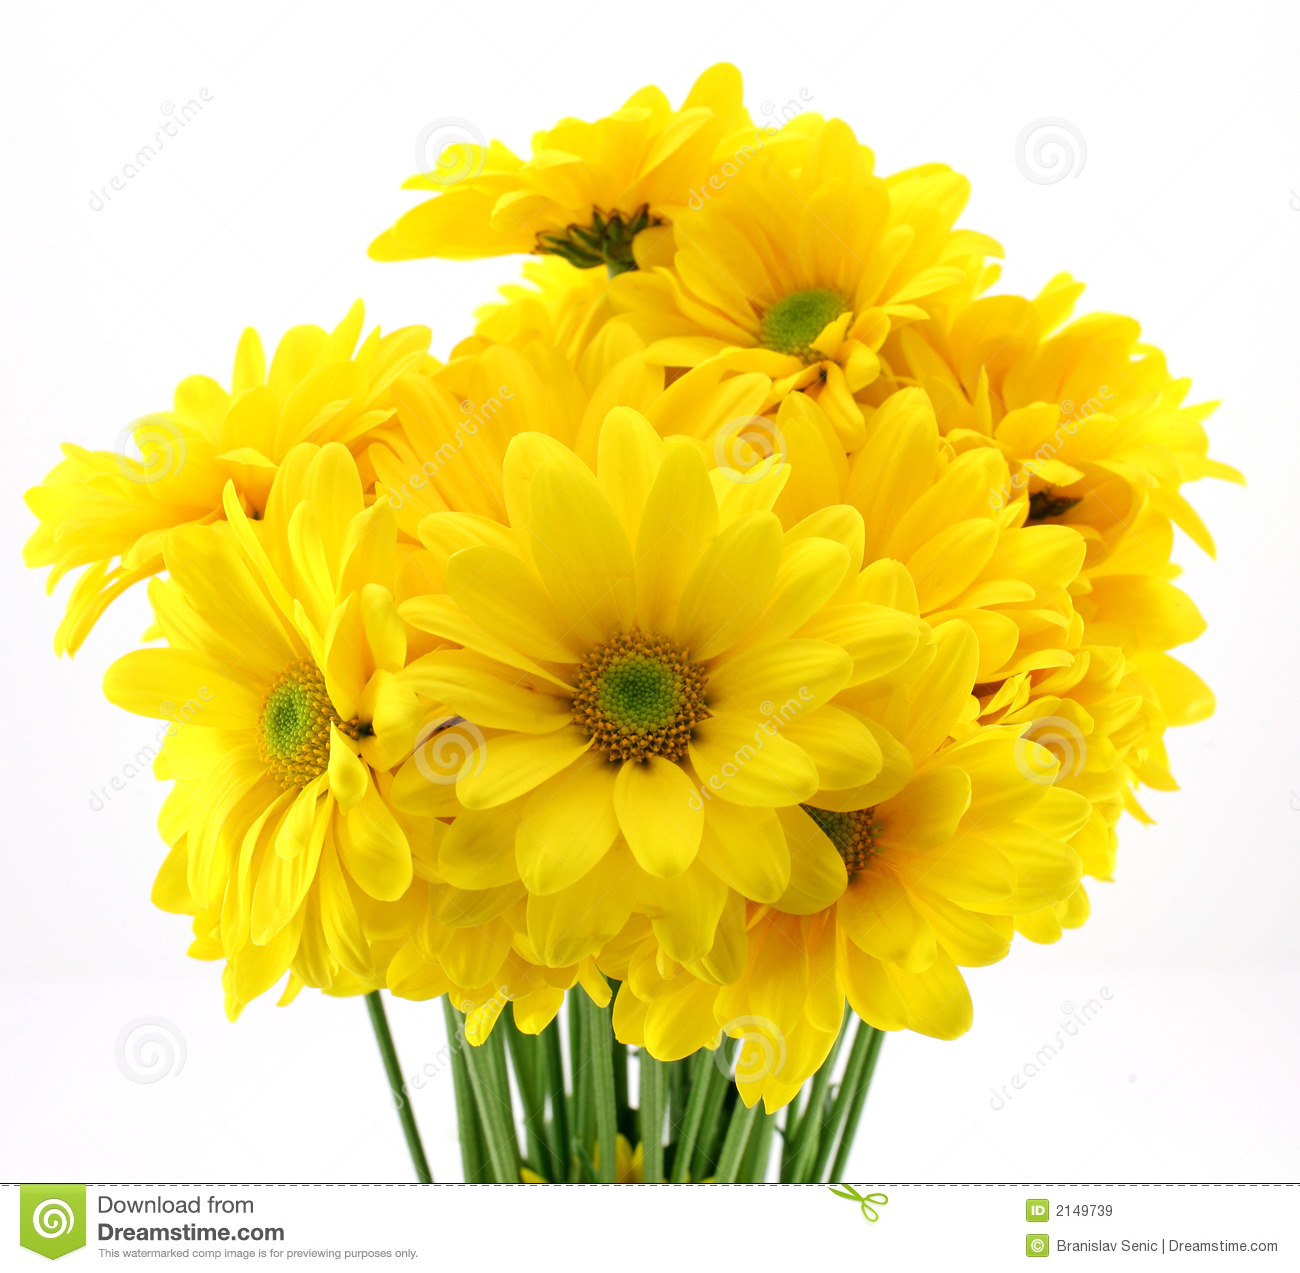 Free pictures of yellow flowers vector free yellow flowers images vector free